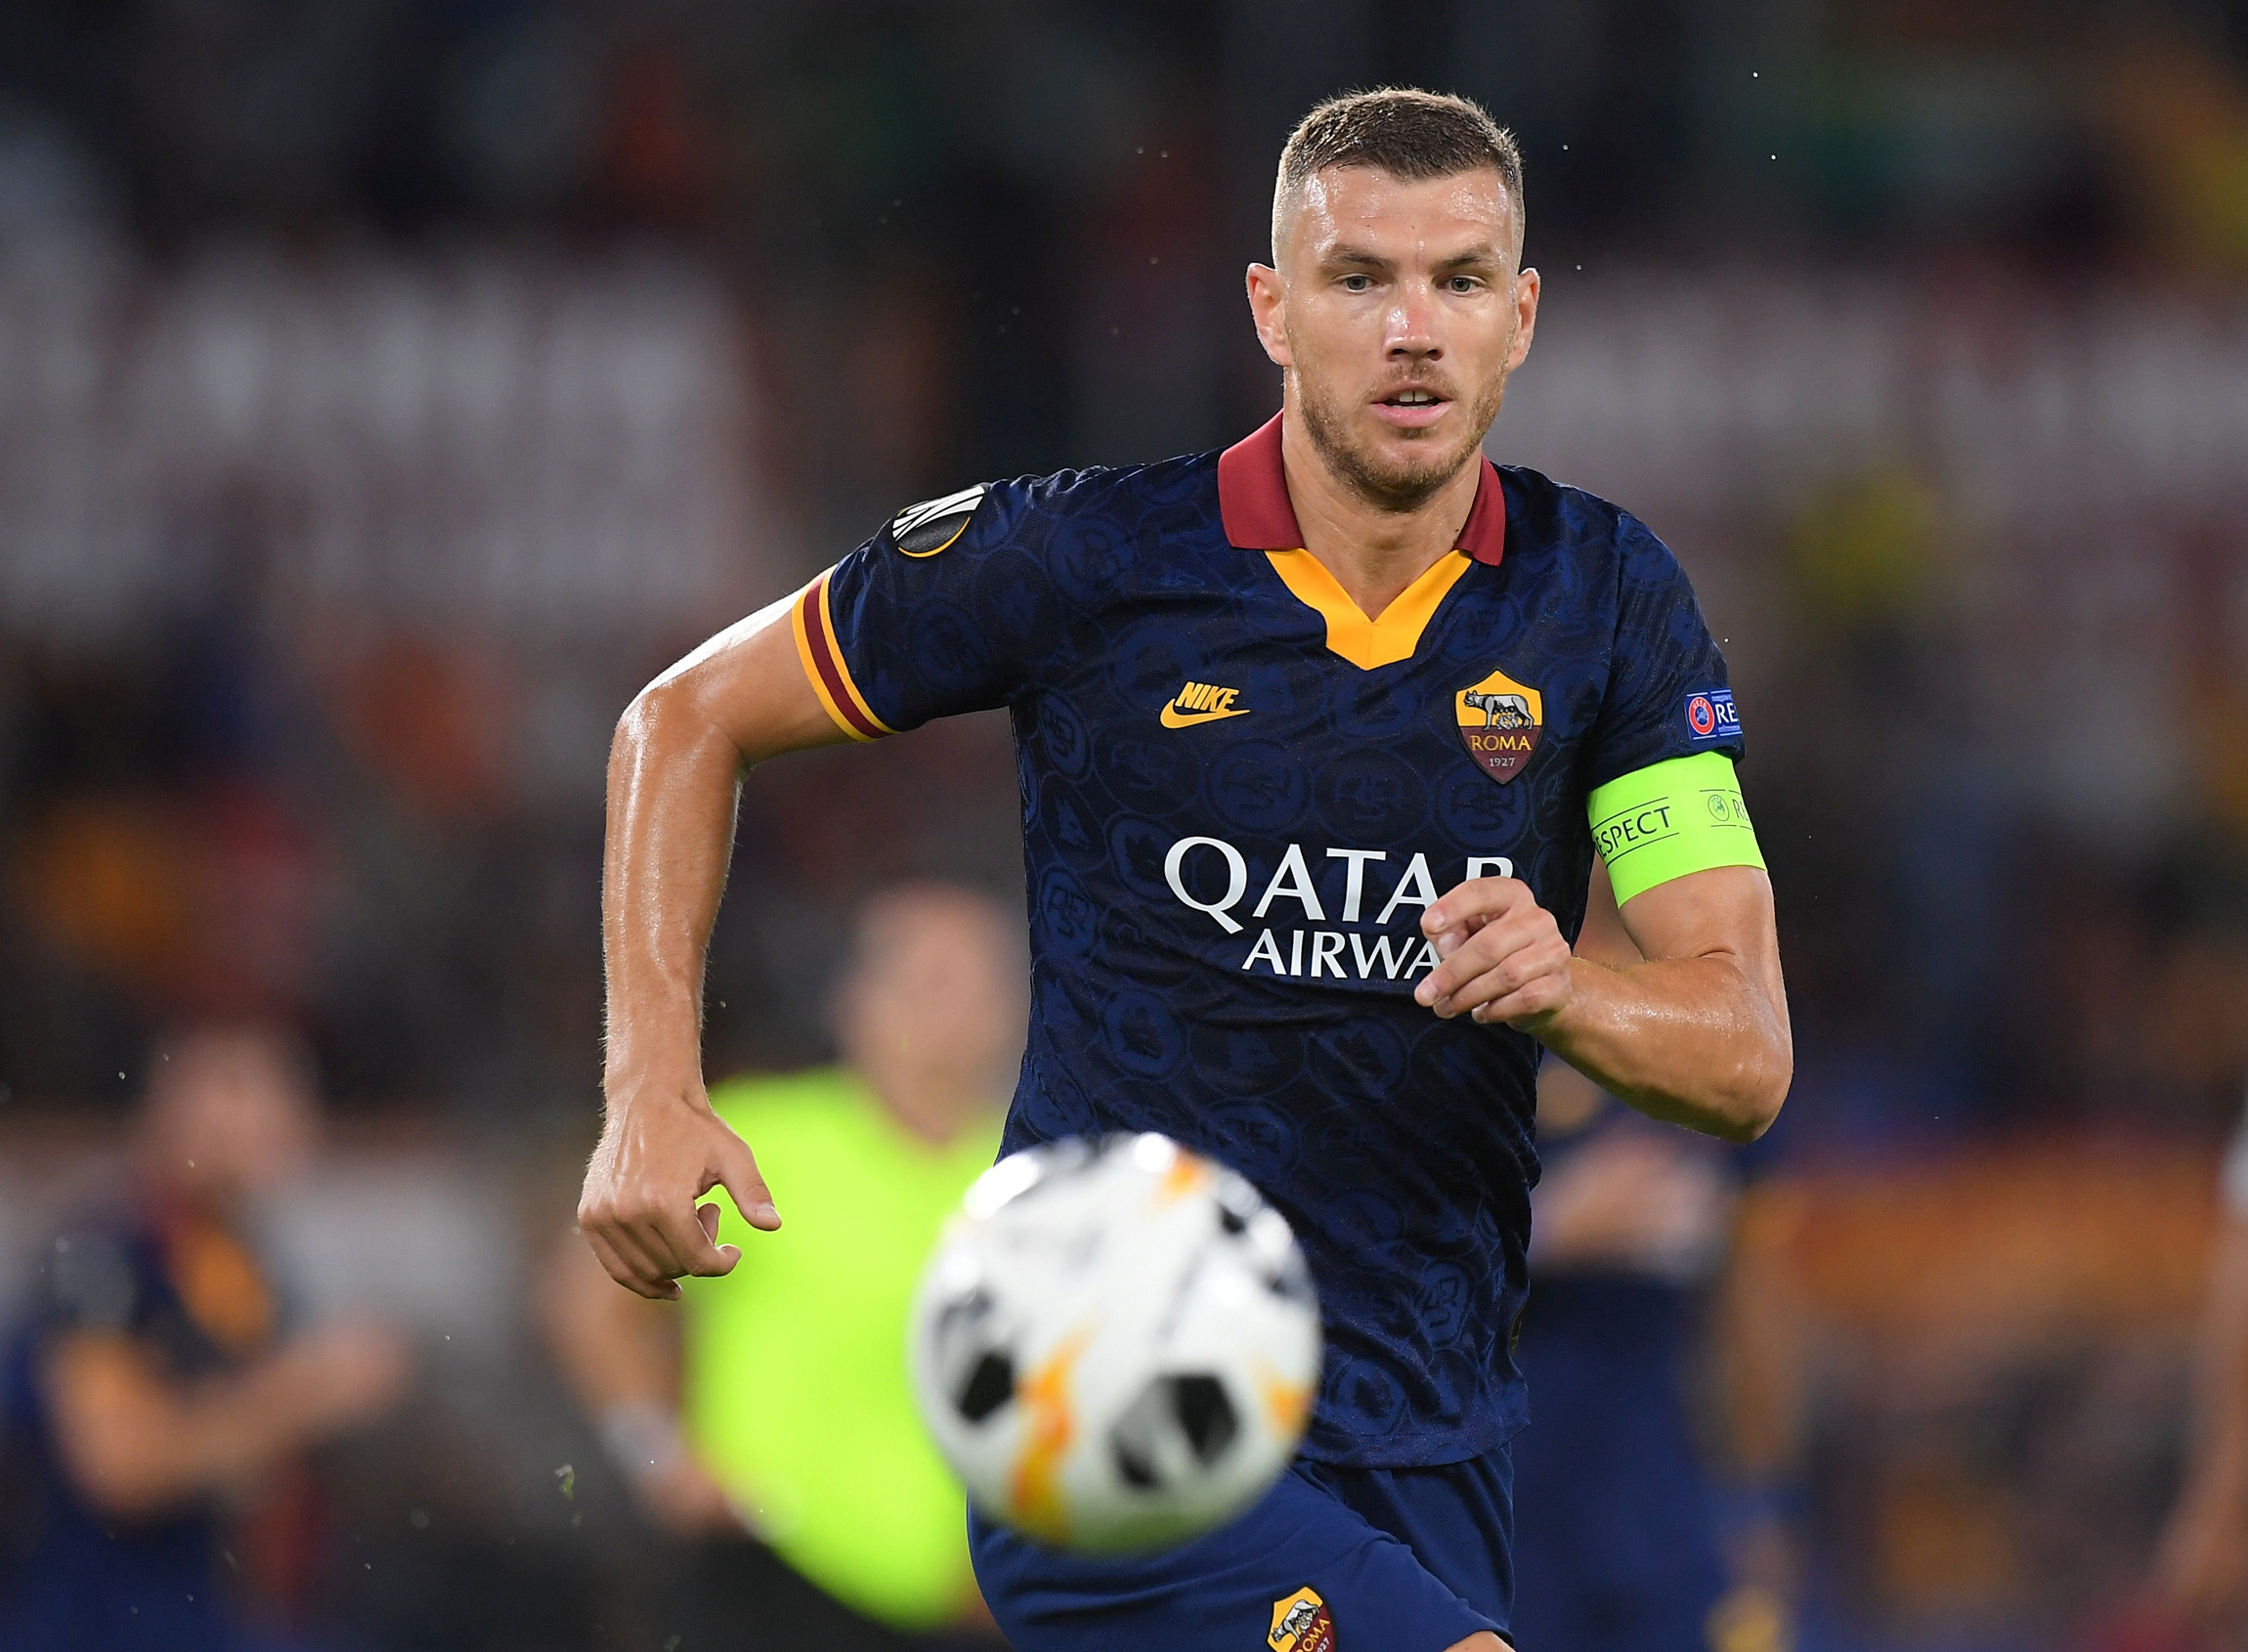 Edin Dzeko & Amadou Diawara add to Serie A side Roma injury woes